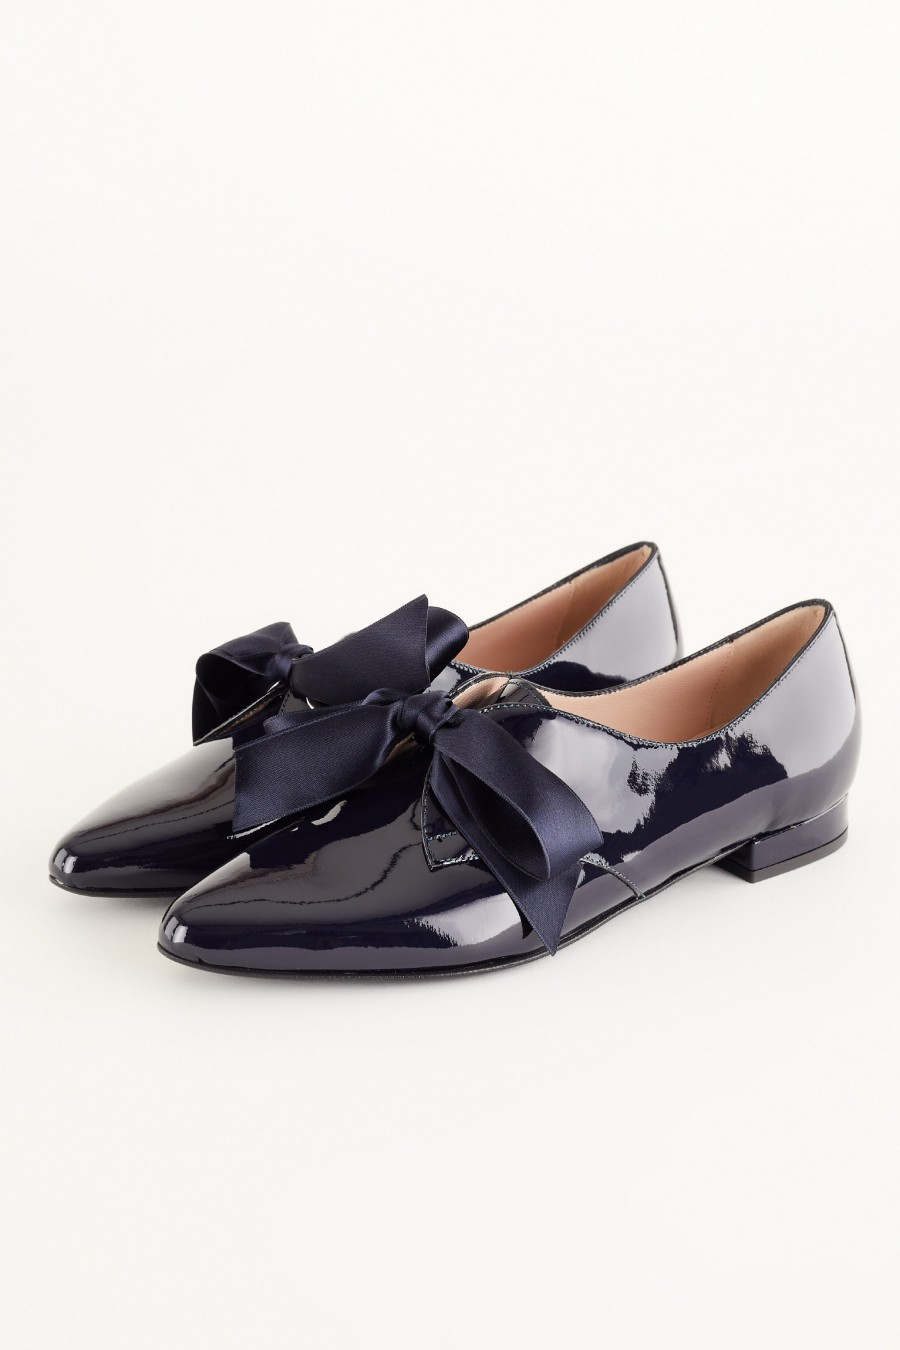 Patent leather flats with satin bow